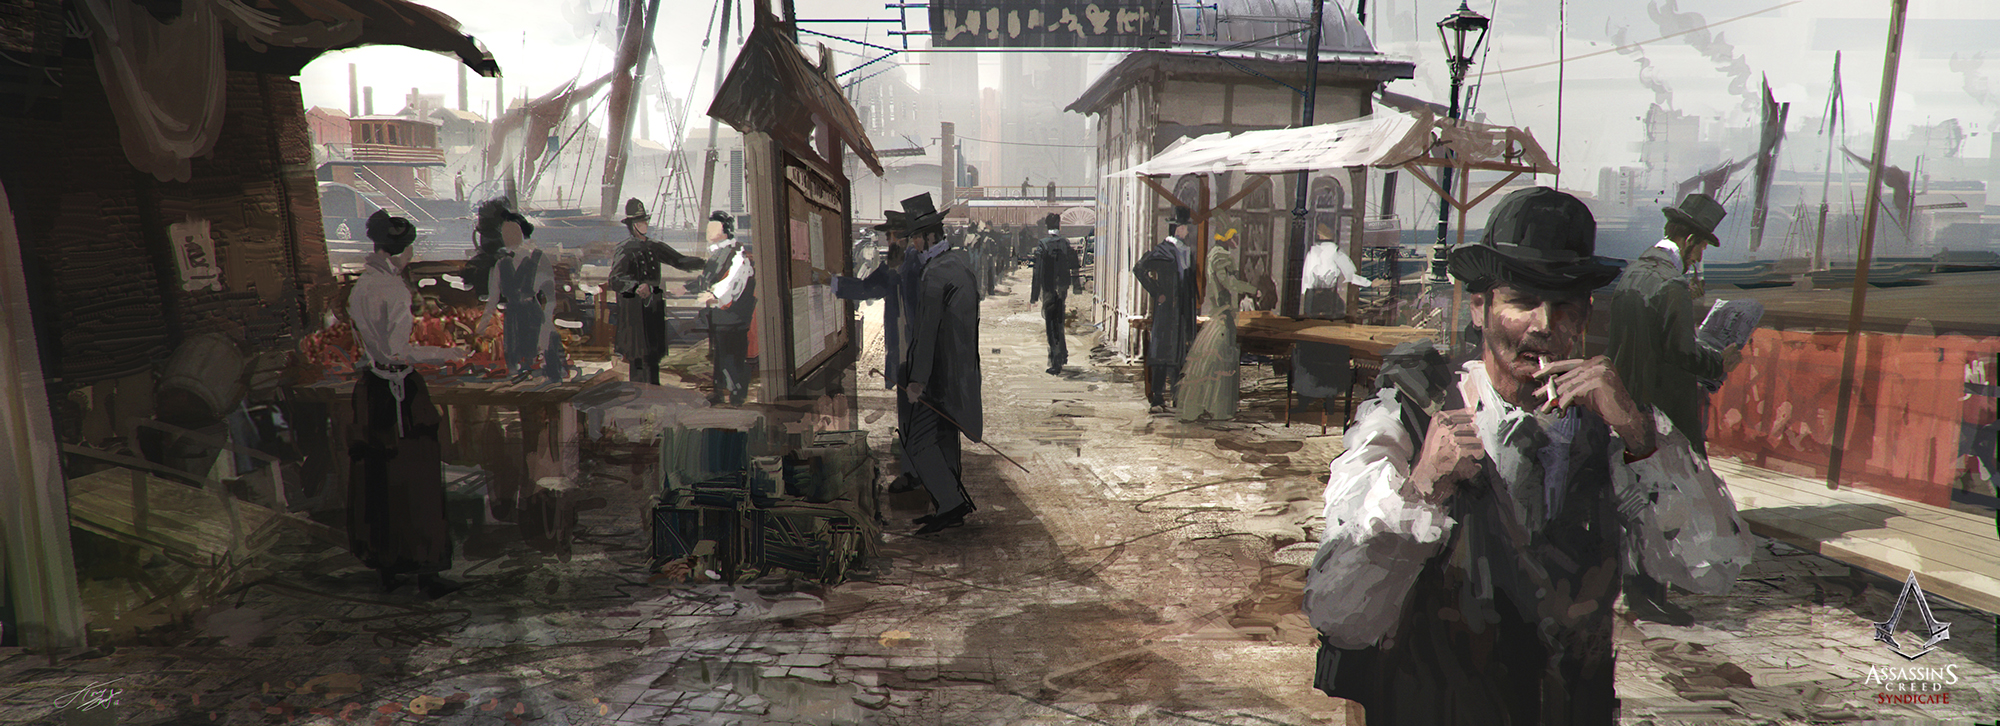 Assassin S Creed Syndicate Concept Art By Tnounsy On Deviantart